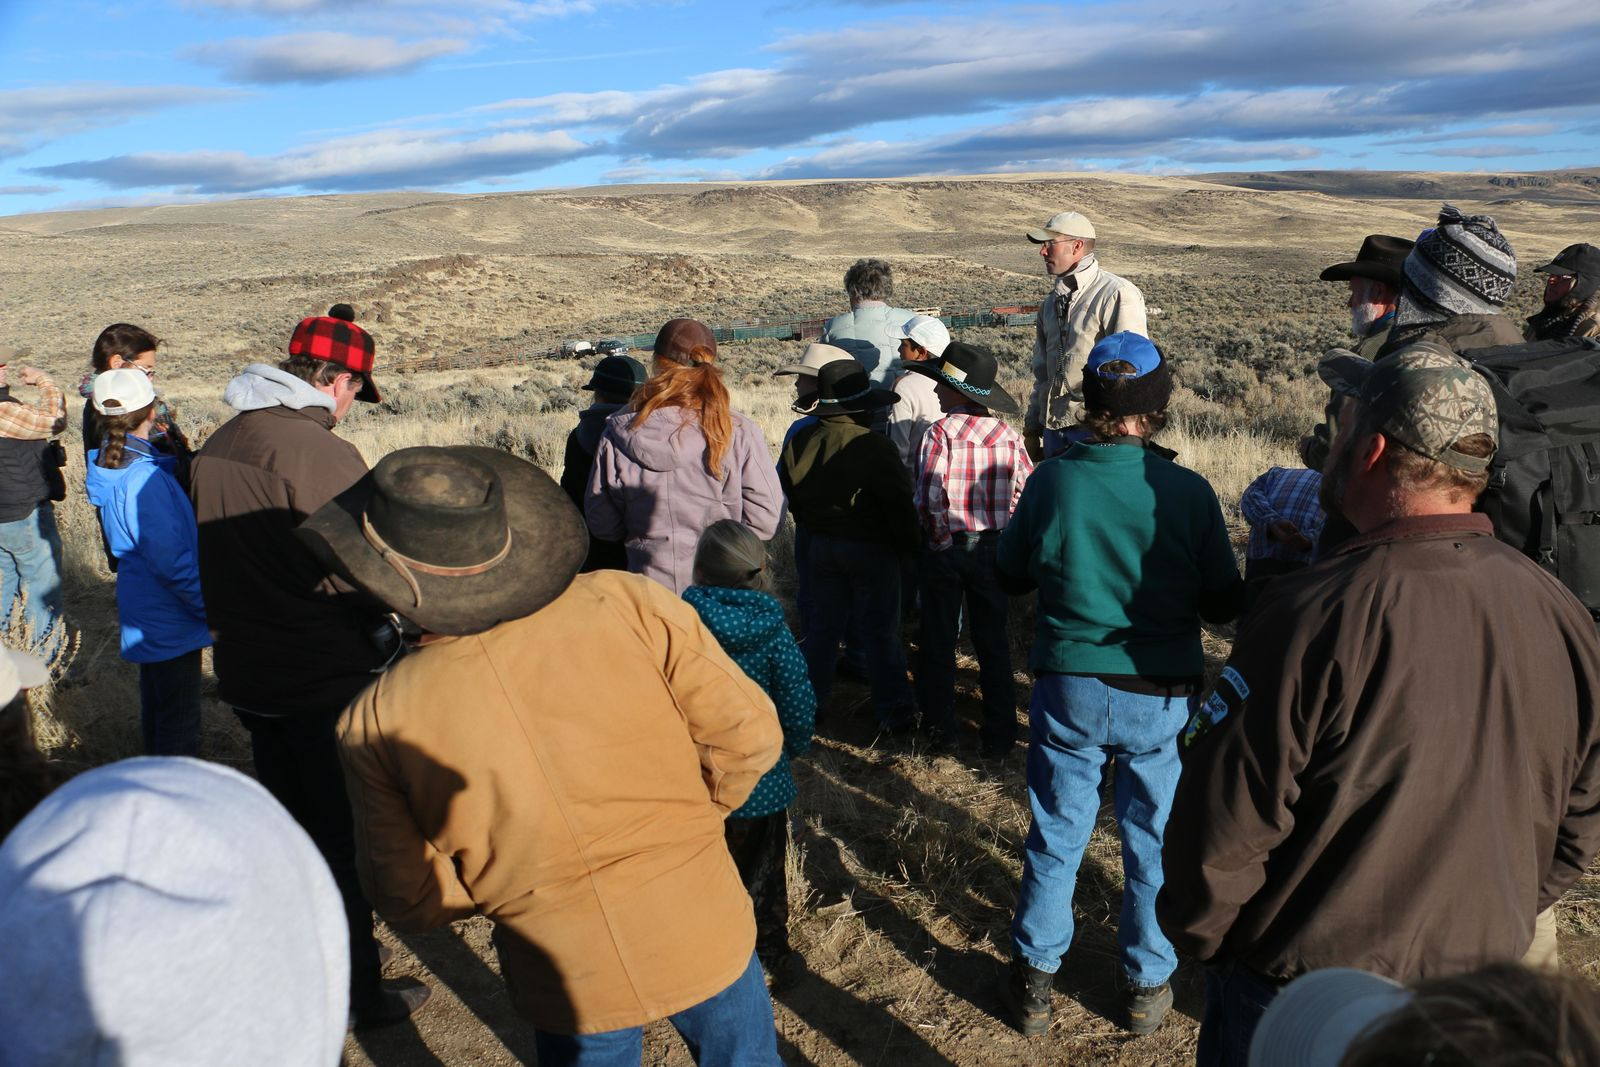 In early November of 2015, the BLM aimed to gather wild horses from the Beaty Butte Management Area. The remote southern Oregon location is 65 miles east of Lakeview and adjacent to the Hart Mountain National Wildlife Refuge.  On Day 2 of the gather, Nov. 5, Fred Woehl, chairman of the National Wild Horse and Burro Advisory Board, visited the site and spoke with students from Adel and Plush schools.  Photos: Larry Moore, BLM